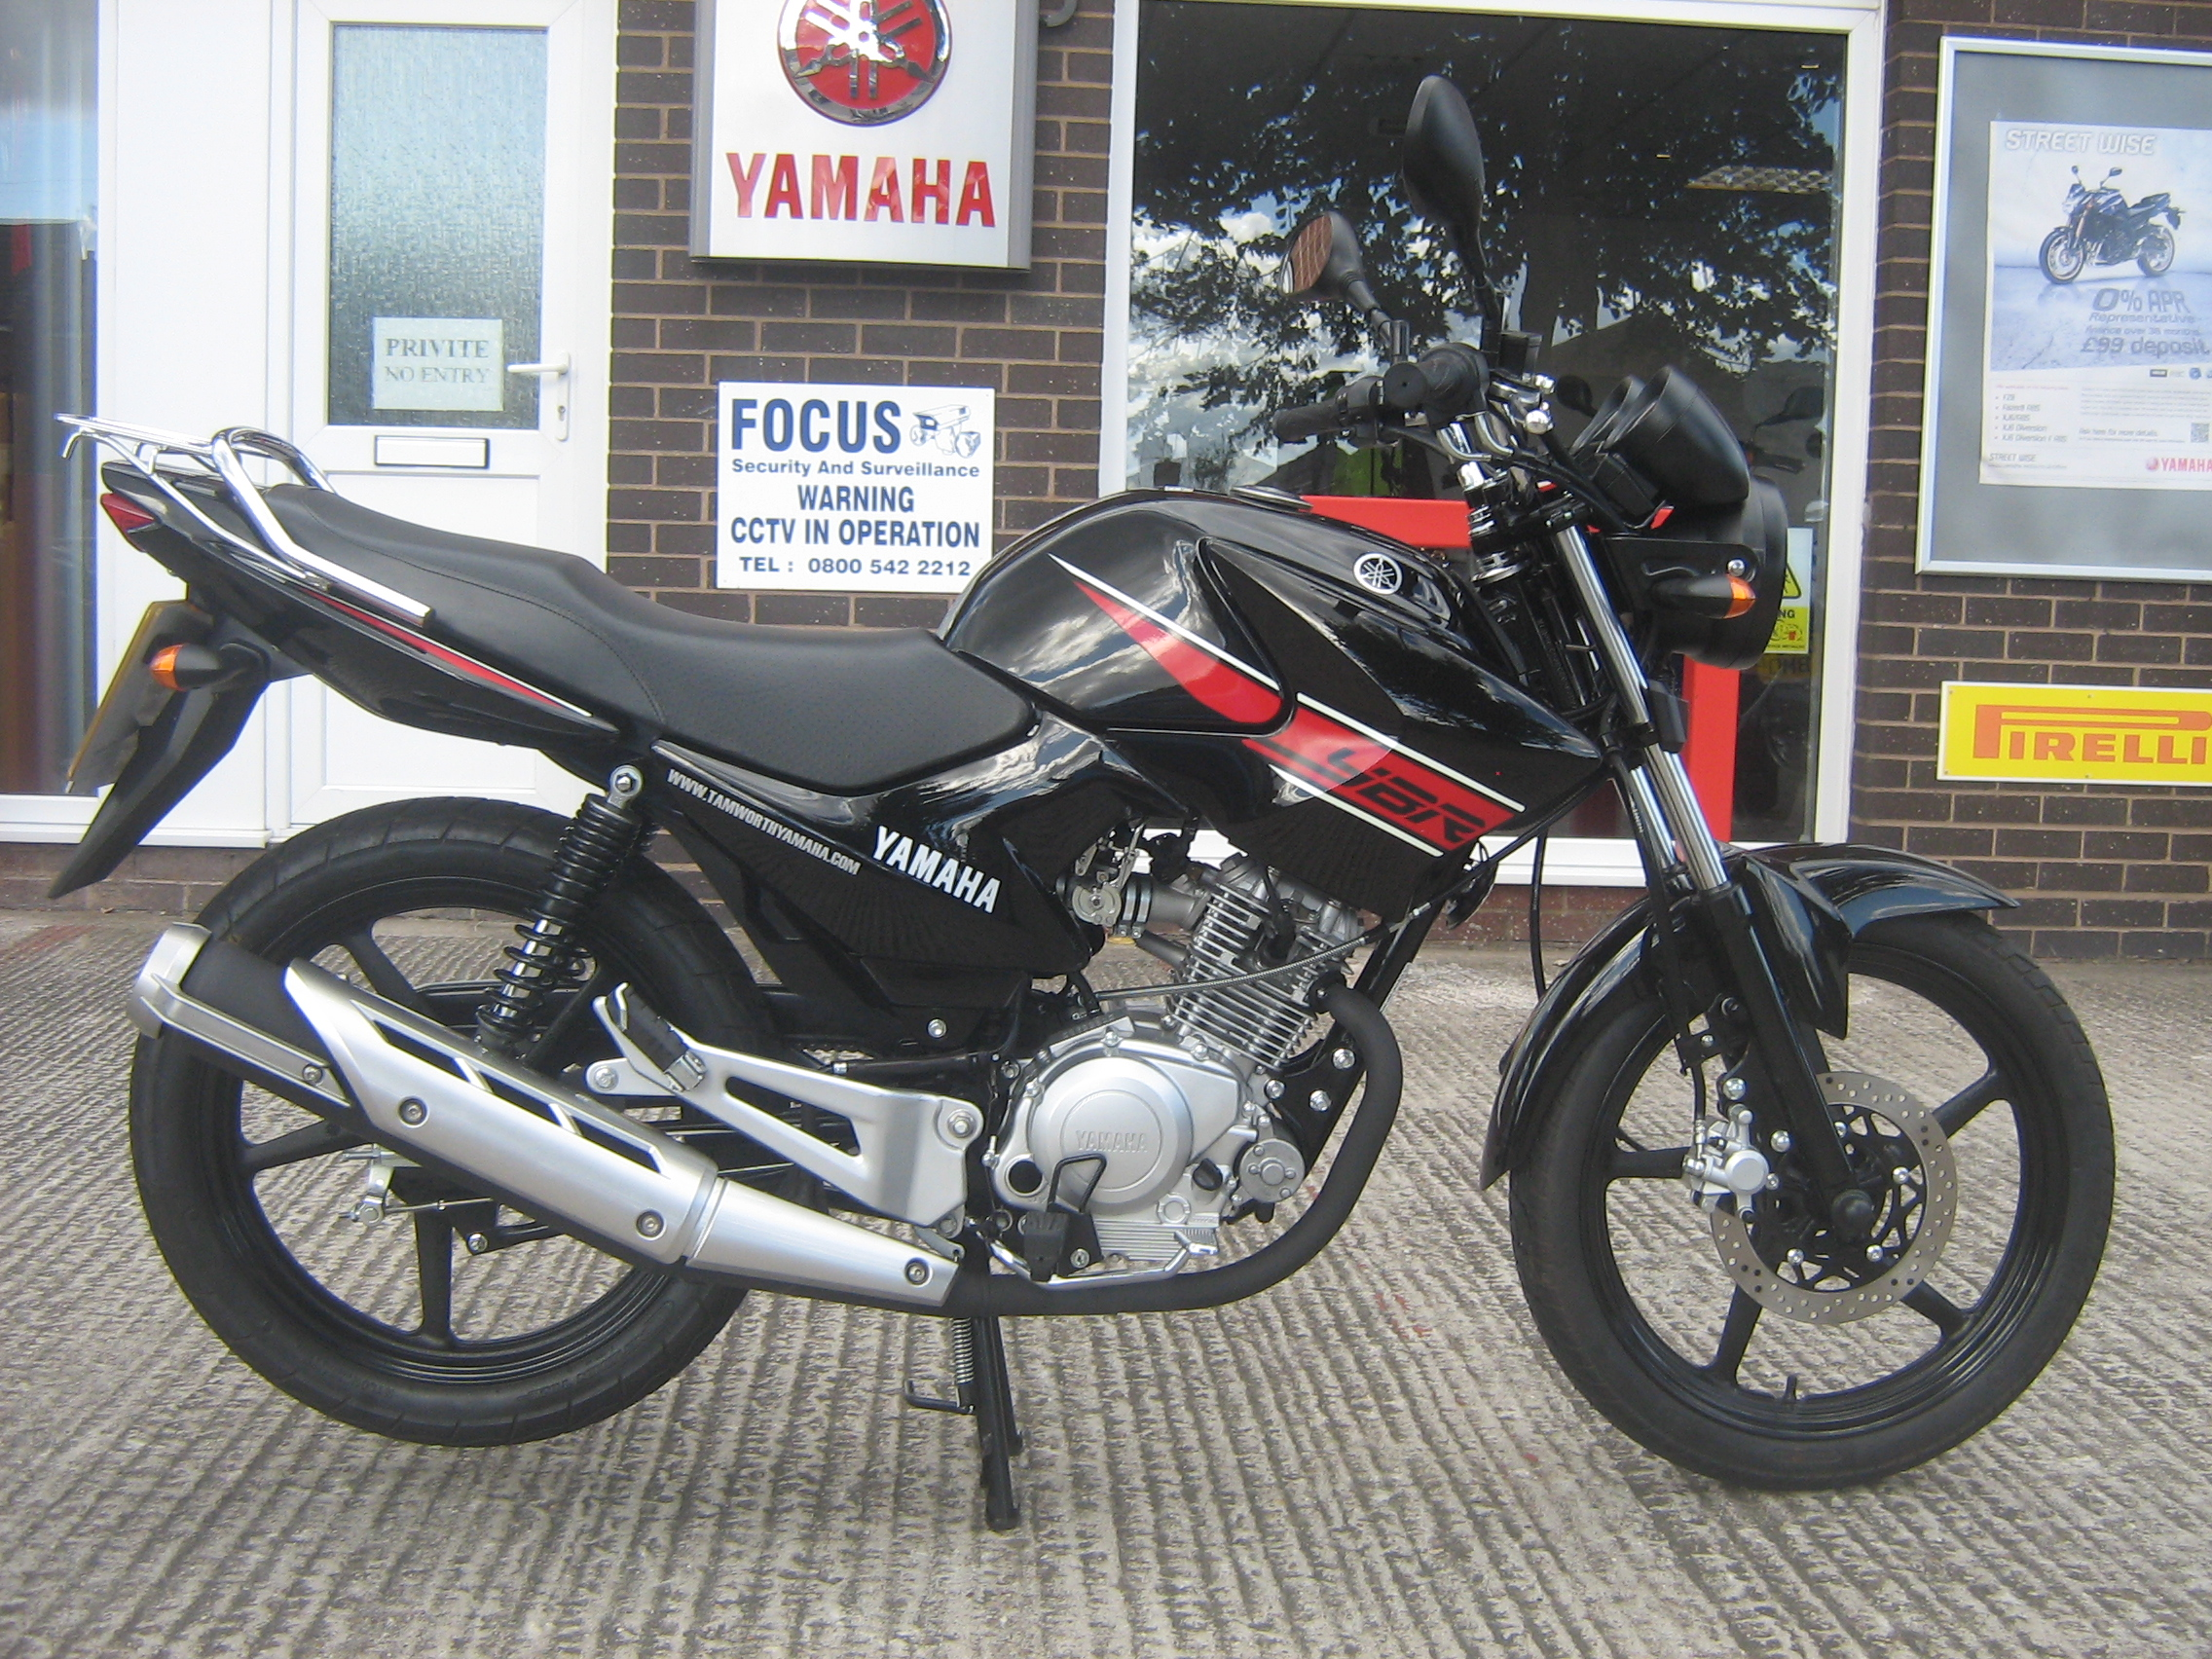 2012 yamaha ybr 125 pics specs and information. Black Bedroom Furniture Sets. Home Design Ideas